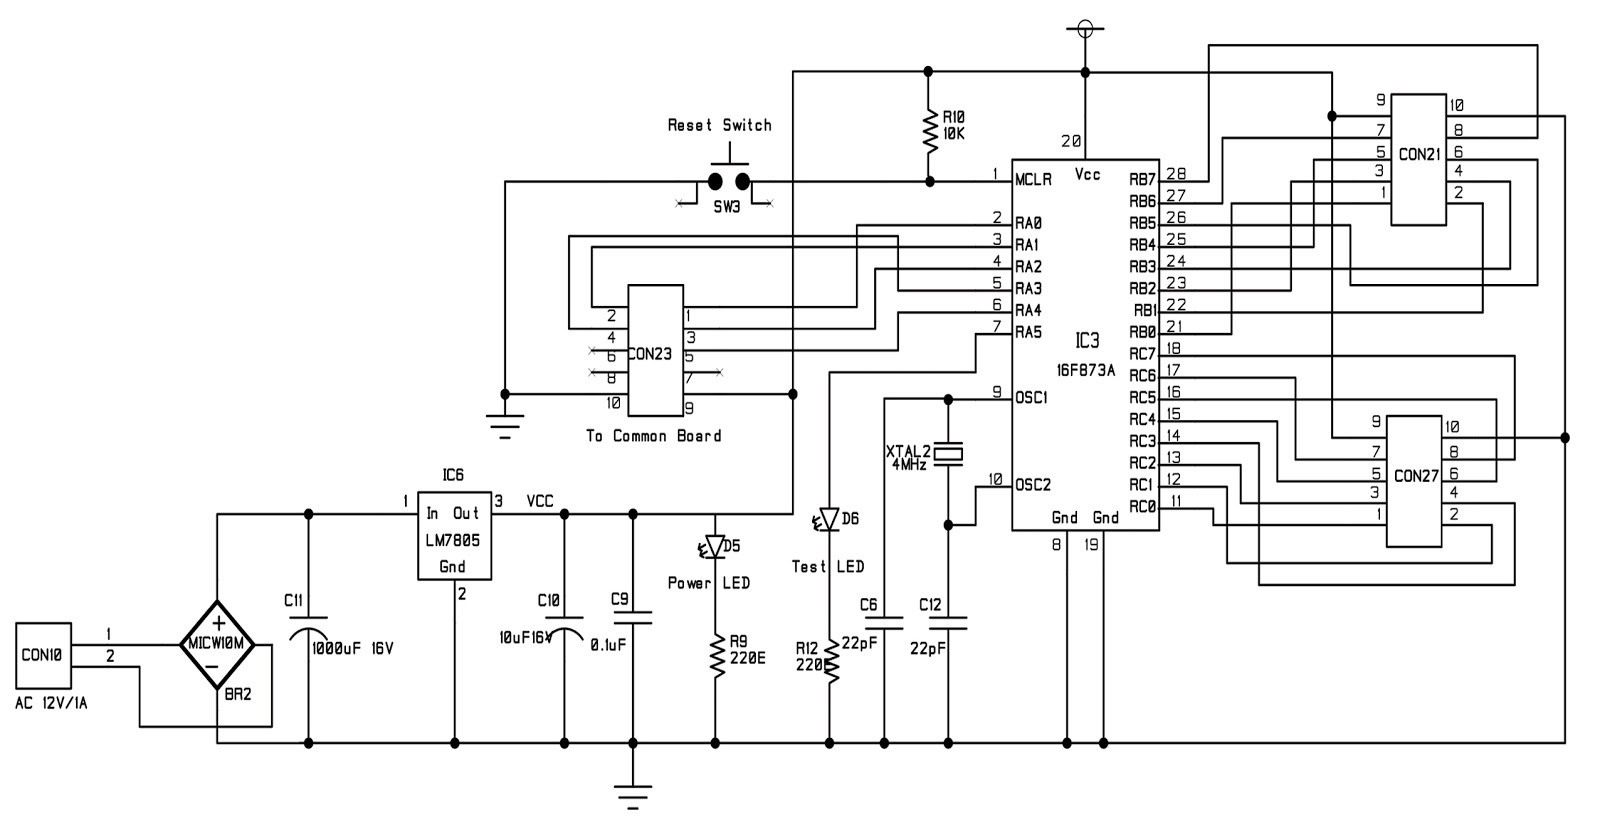 100 Ohm Platinum Wiring Diagram 2 4 Ohm With 2 Channel Amp